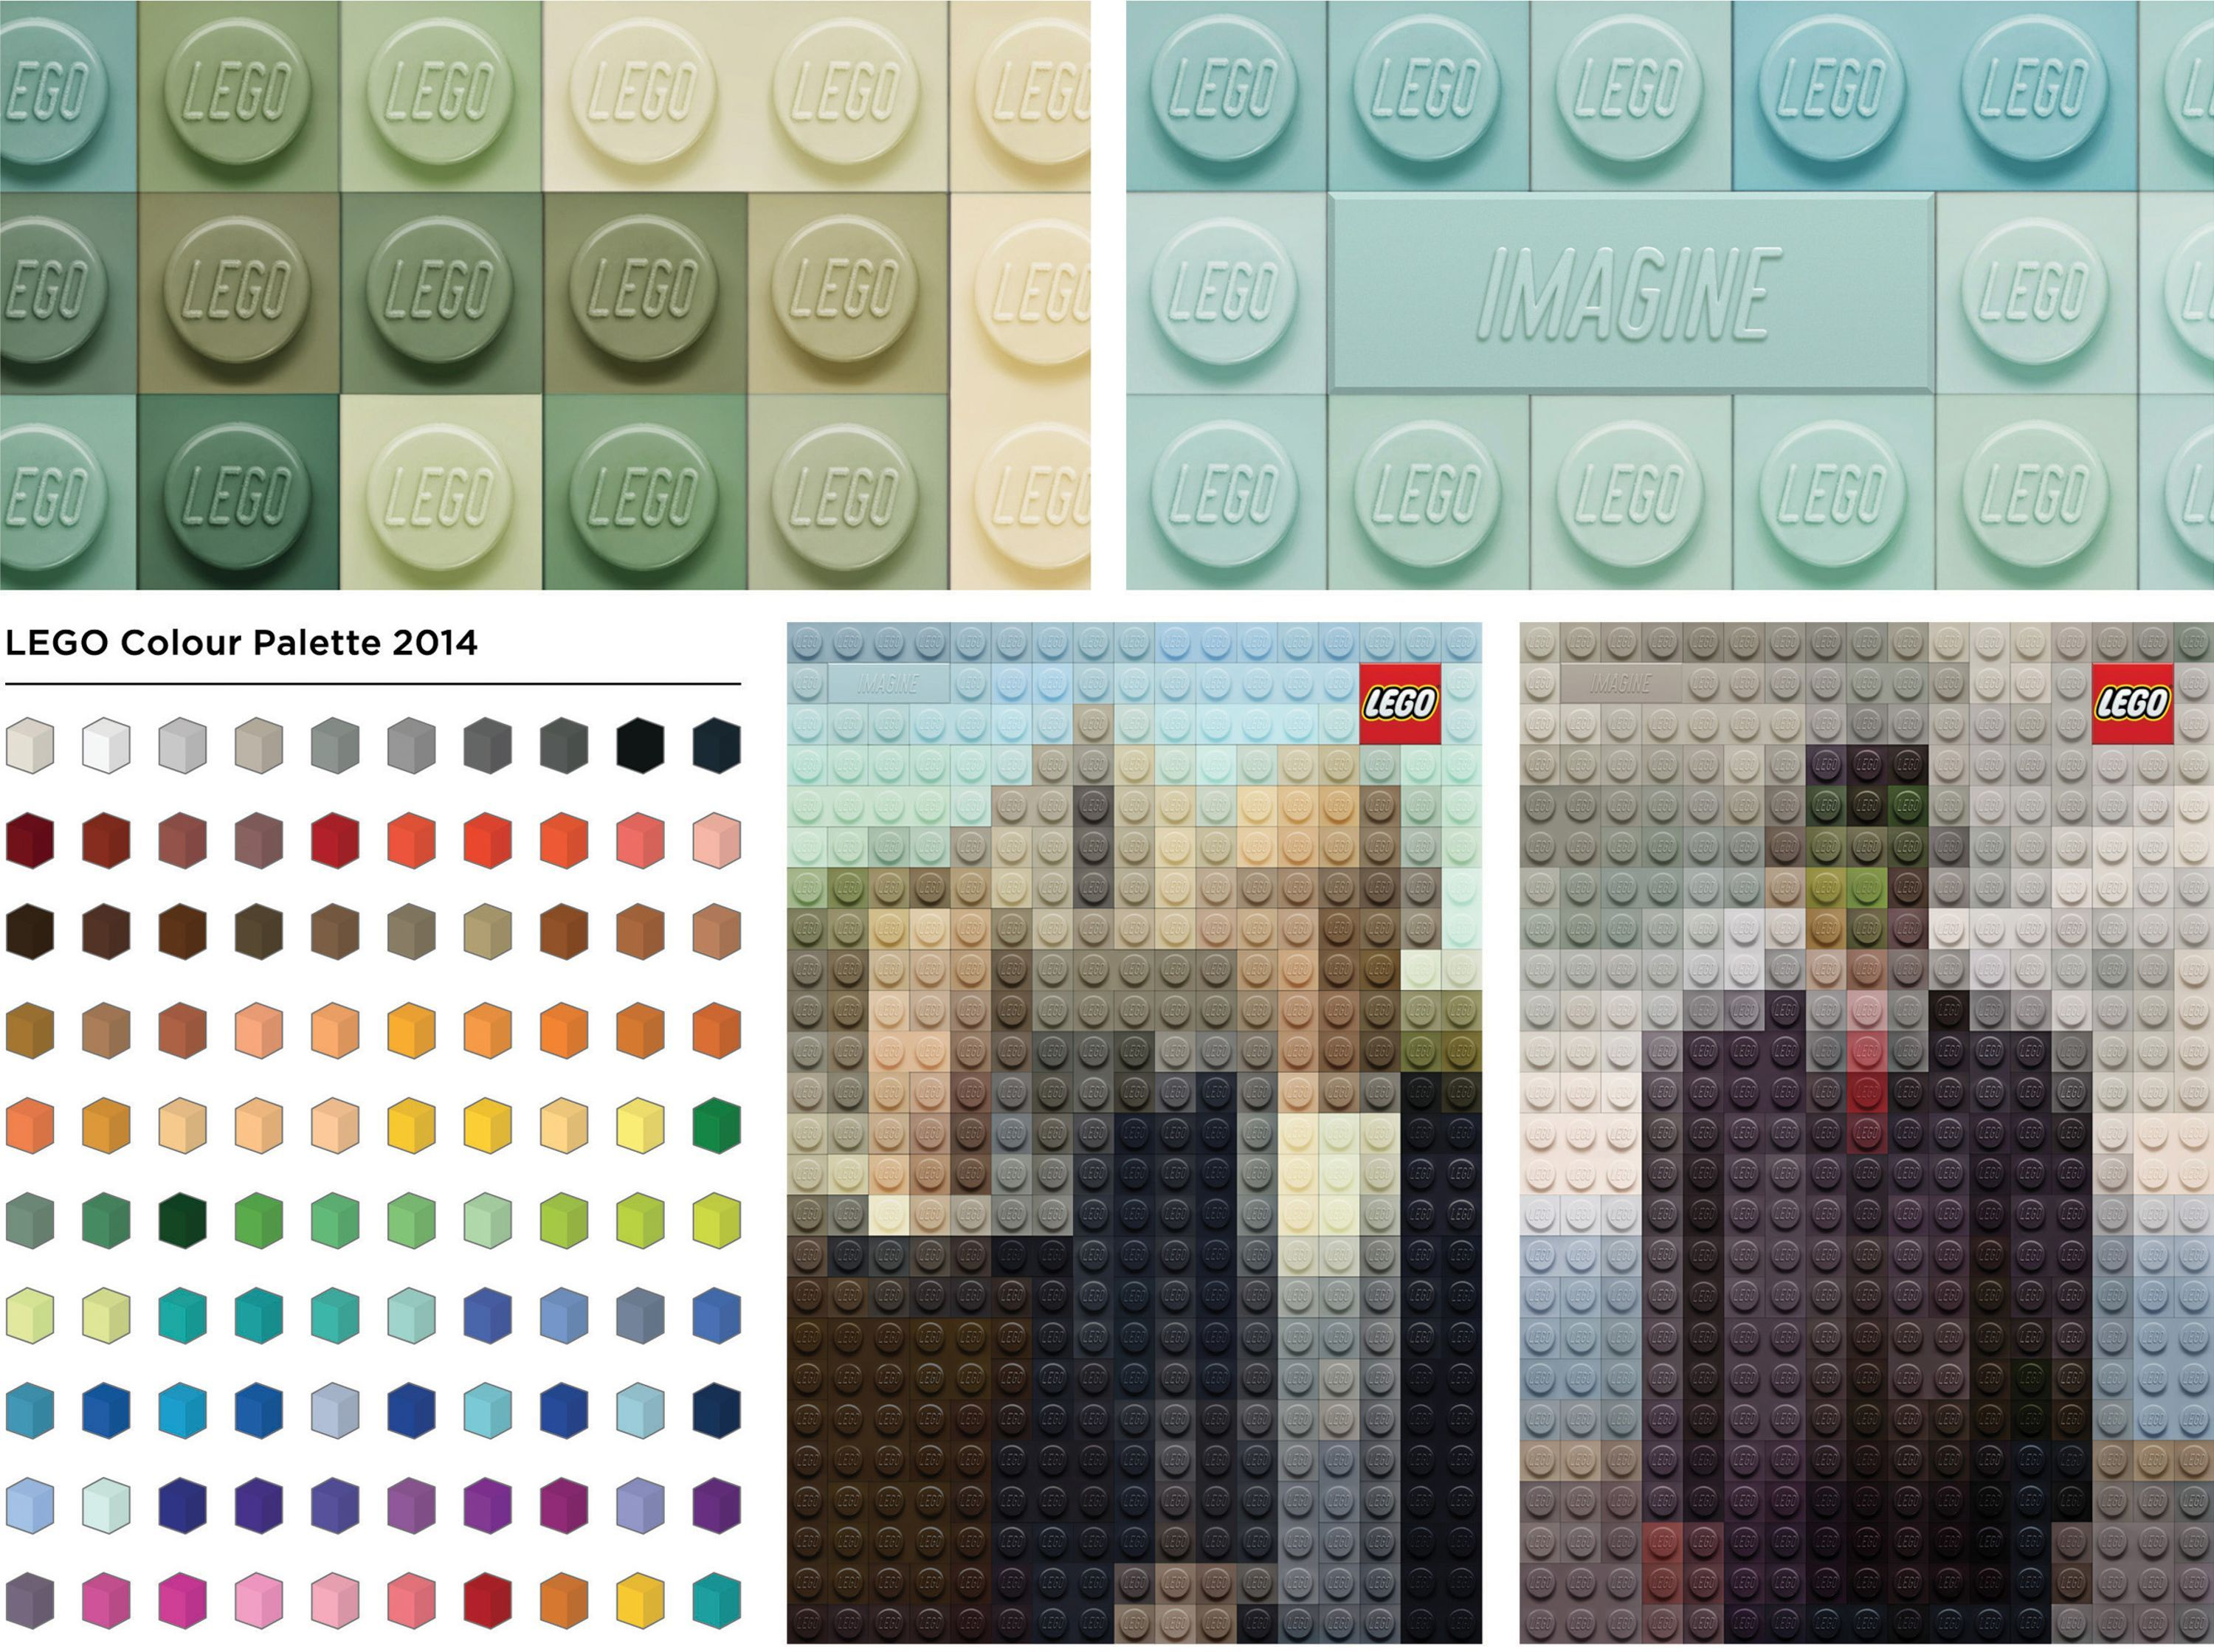 D ad poster design - Magritte Van Gogh Wood Creative Lego Art Advertising Posters Graphic Design Award